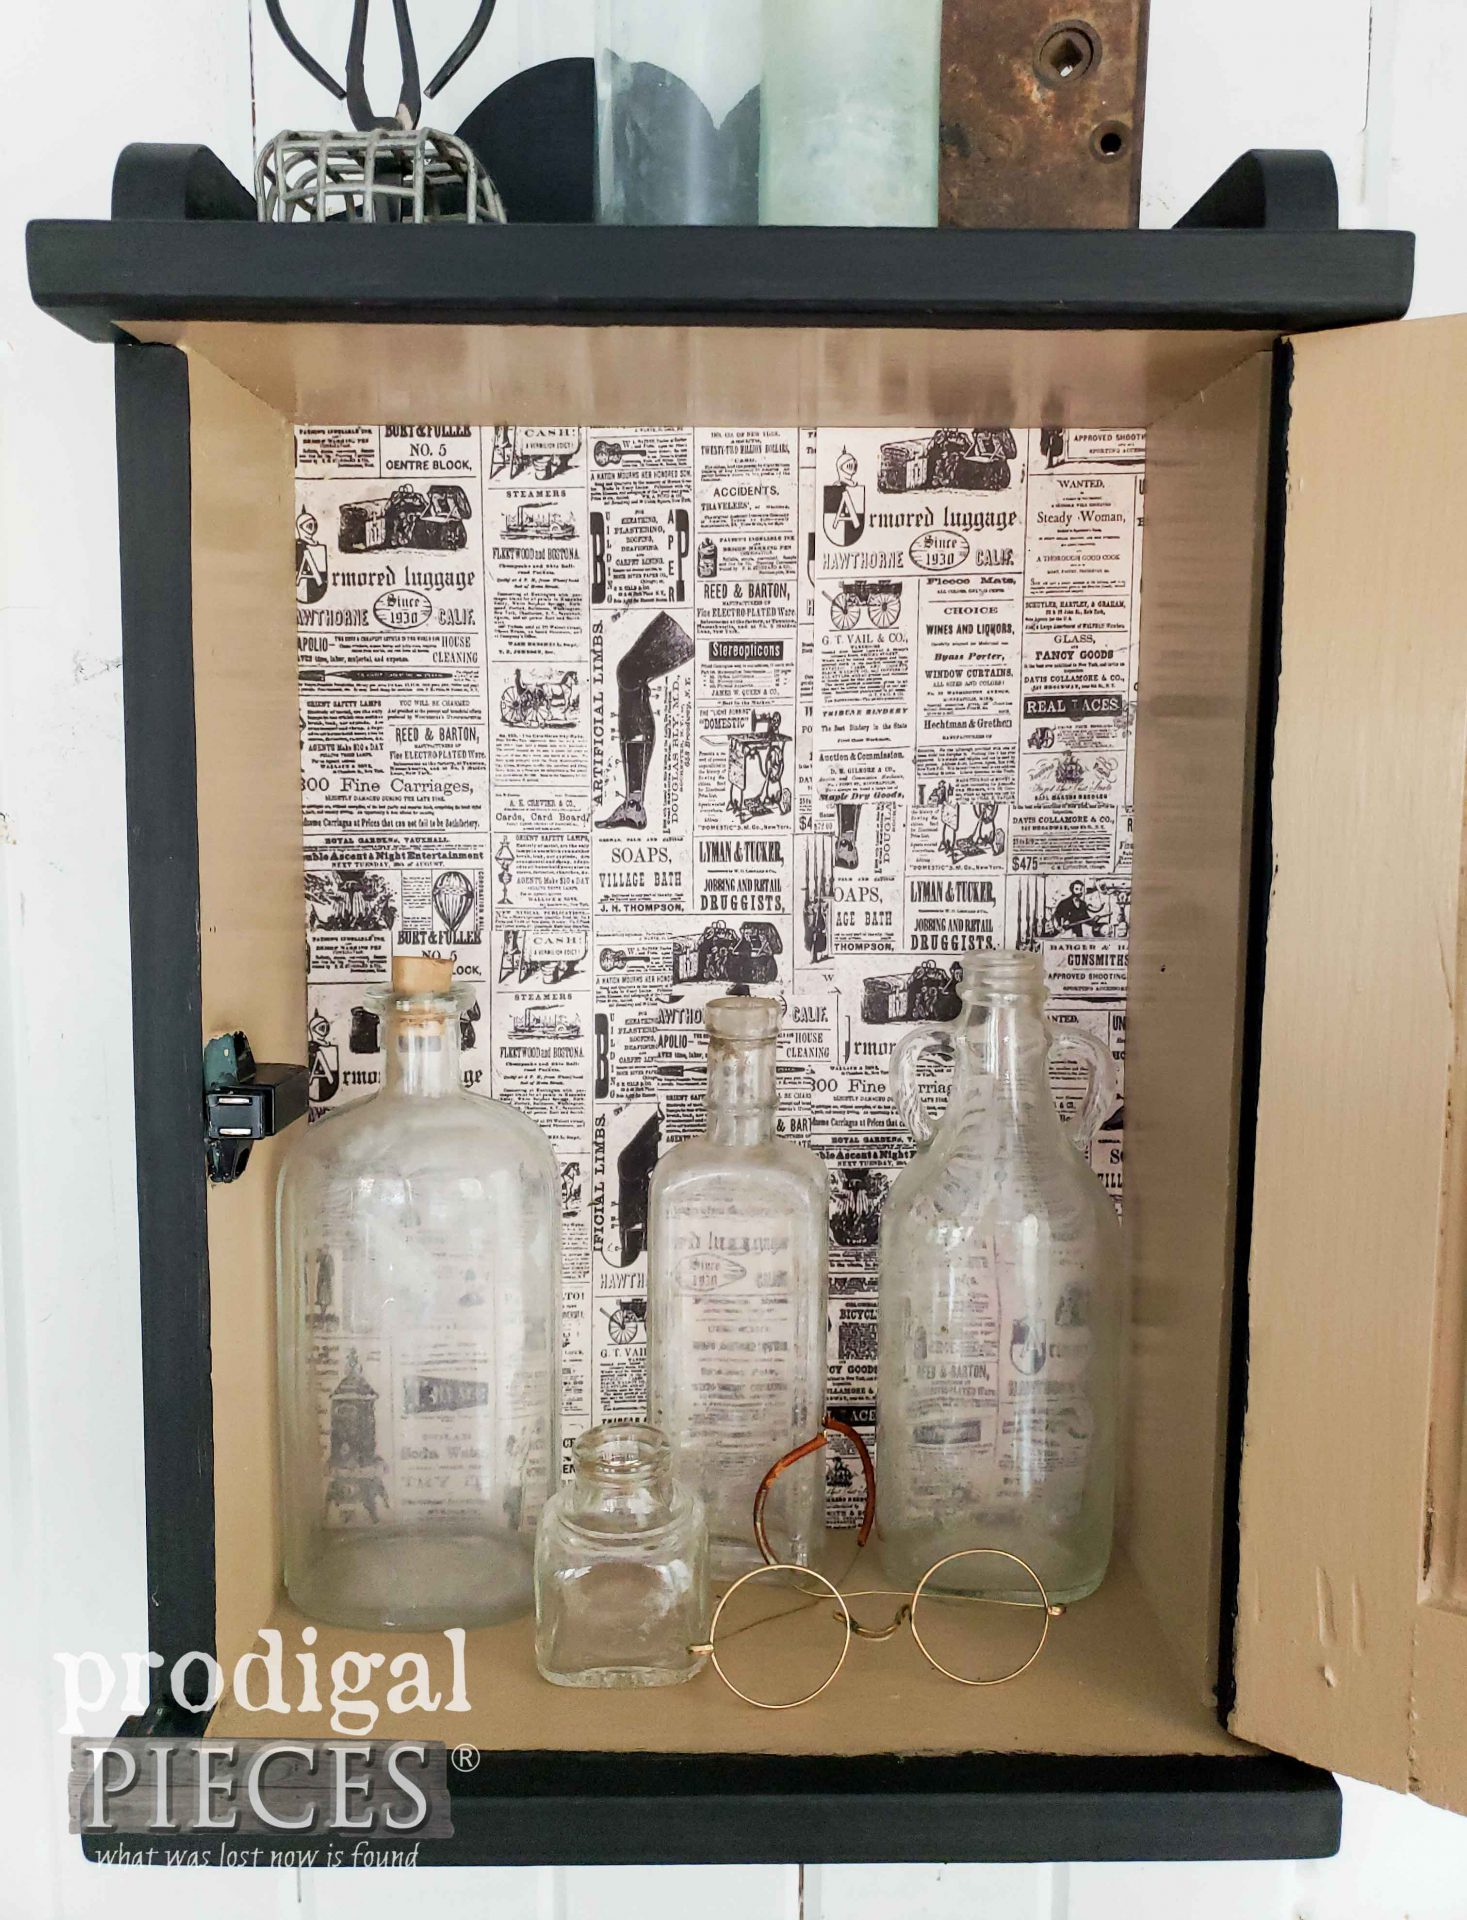 Vintage Newspaper Print Lined Vintage Apothecary Cabinet by Larissa of Prodigal Pieces | prodigalpieces.com #prodigalpieces #diy #vintage #home #farmhouse #homedecor